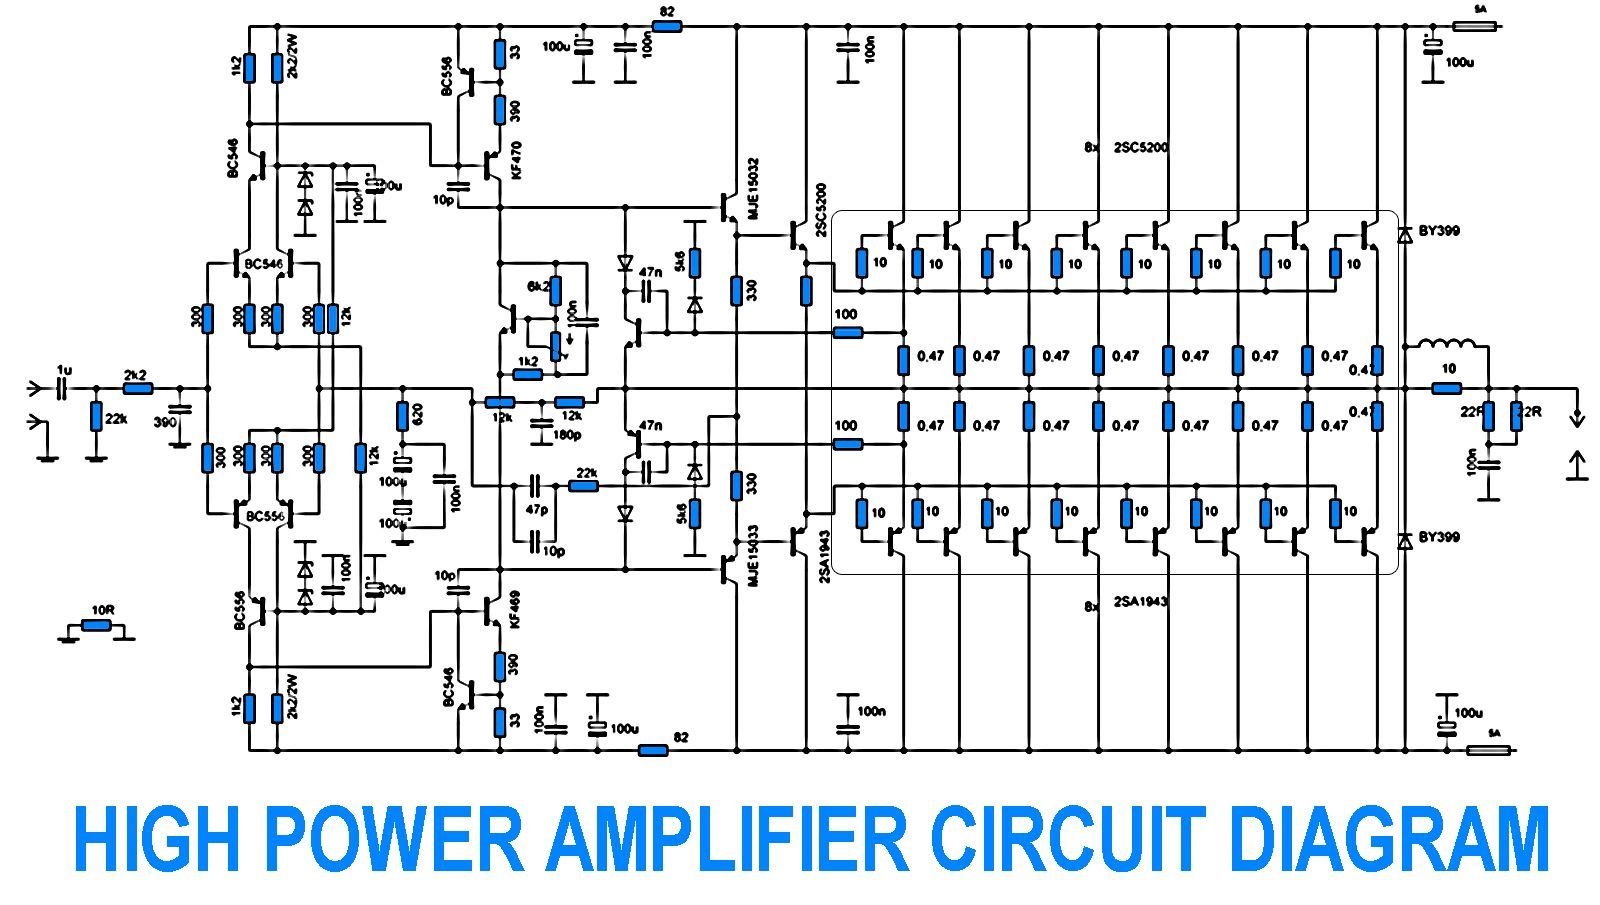 700w Power Amplifier With 2sc5200 2sa1943 Electronic Stuff Band Stop Filter Circuits And Diagramelectronics Adjust The Looks Calm But We Requirement Not Put Out Of Your Mind To Adjustment Happening Forcing Transistors